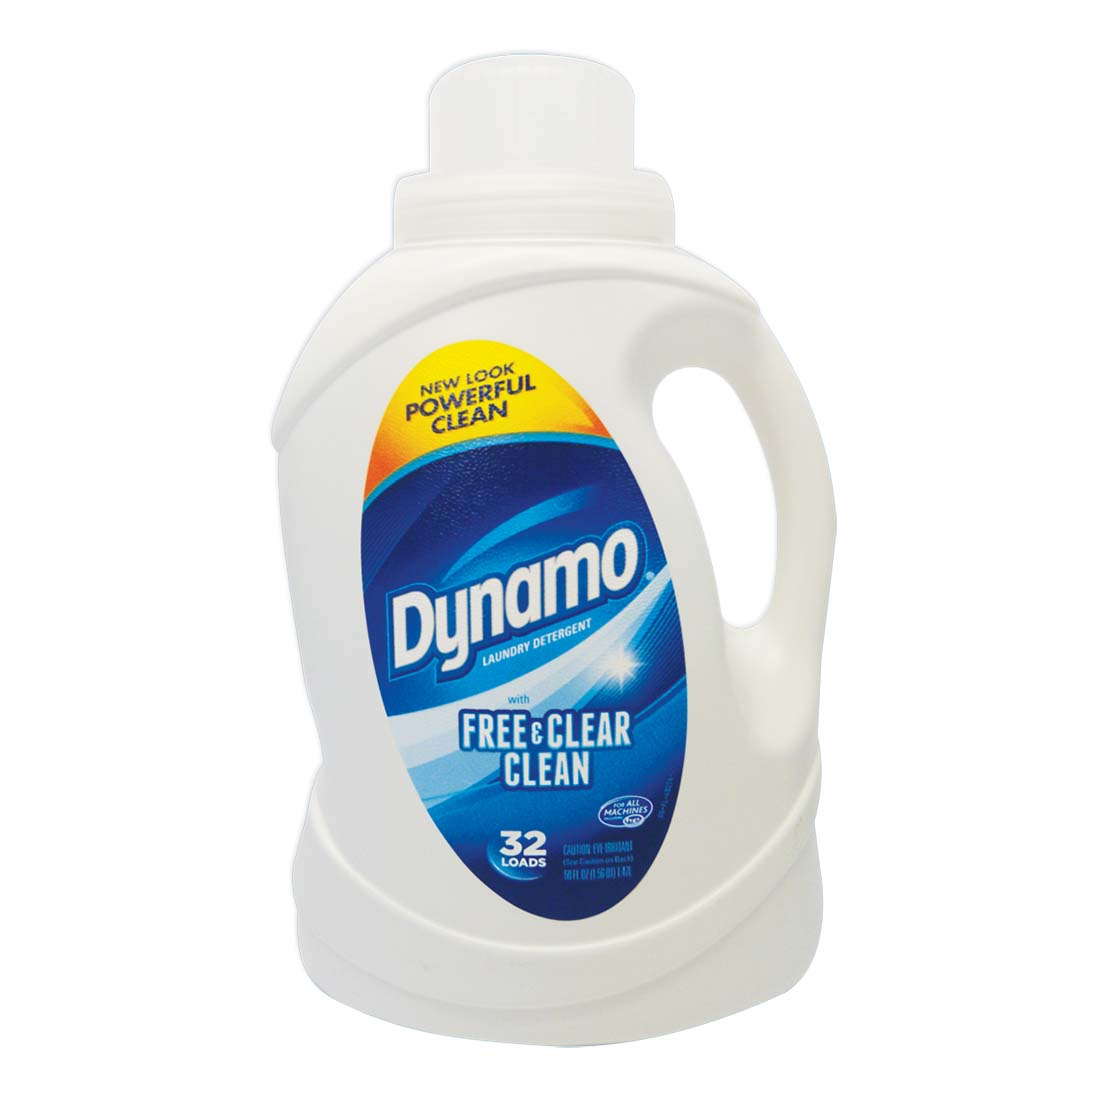 View DYNAMO LIQUID LAUNDRY DETERGENT 50 OUNCE 32 LOADS FREE AND CLEAR CLEAN